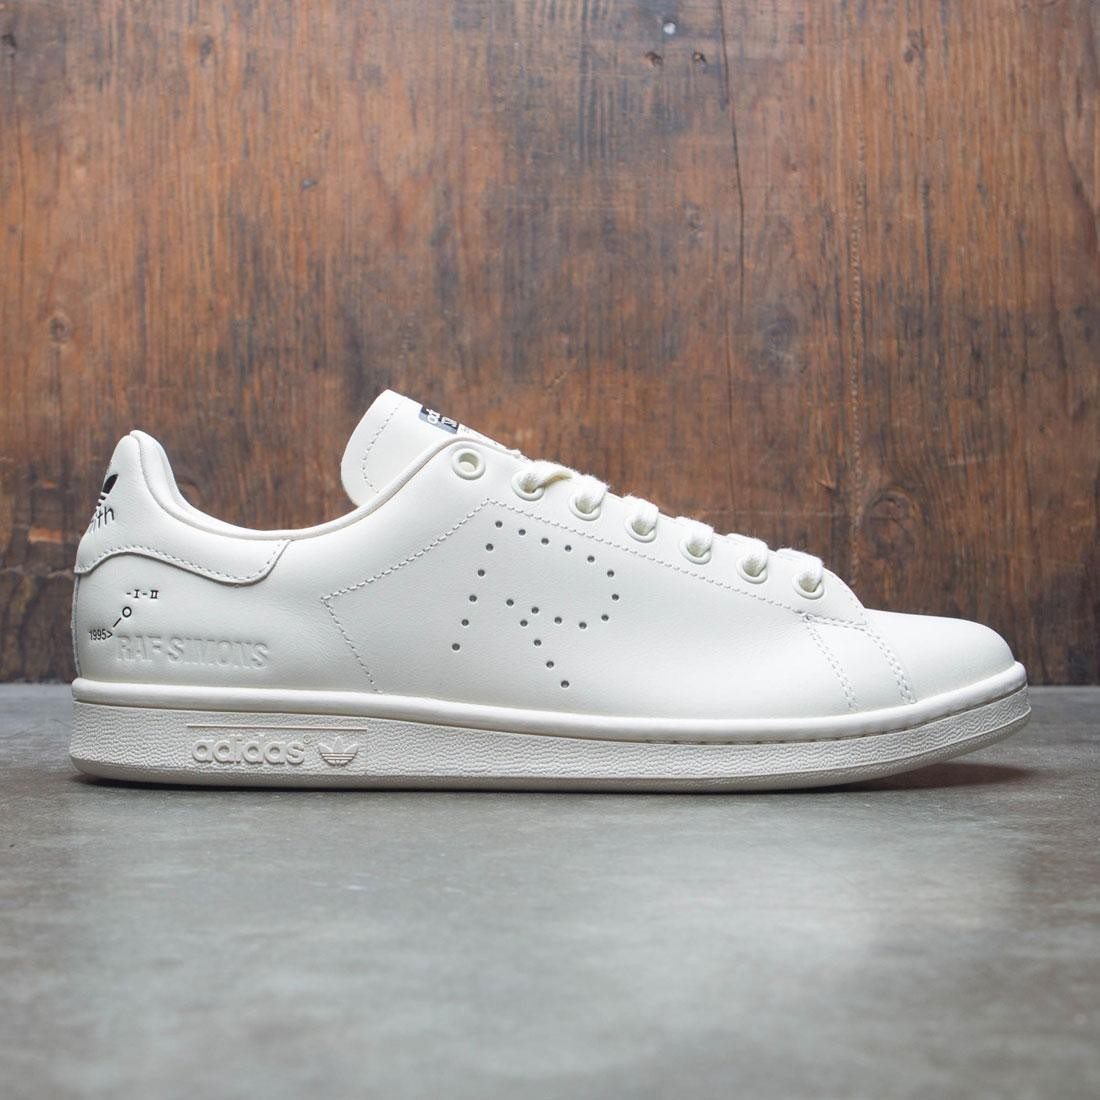 Adidas Raf Simons Men RS Stan Smith (white / cream white / clear brown / footwear white)